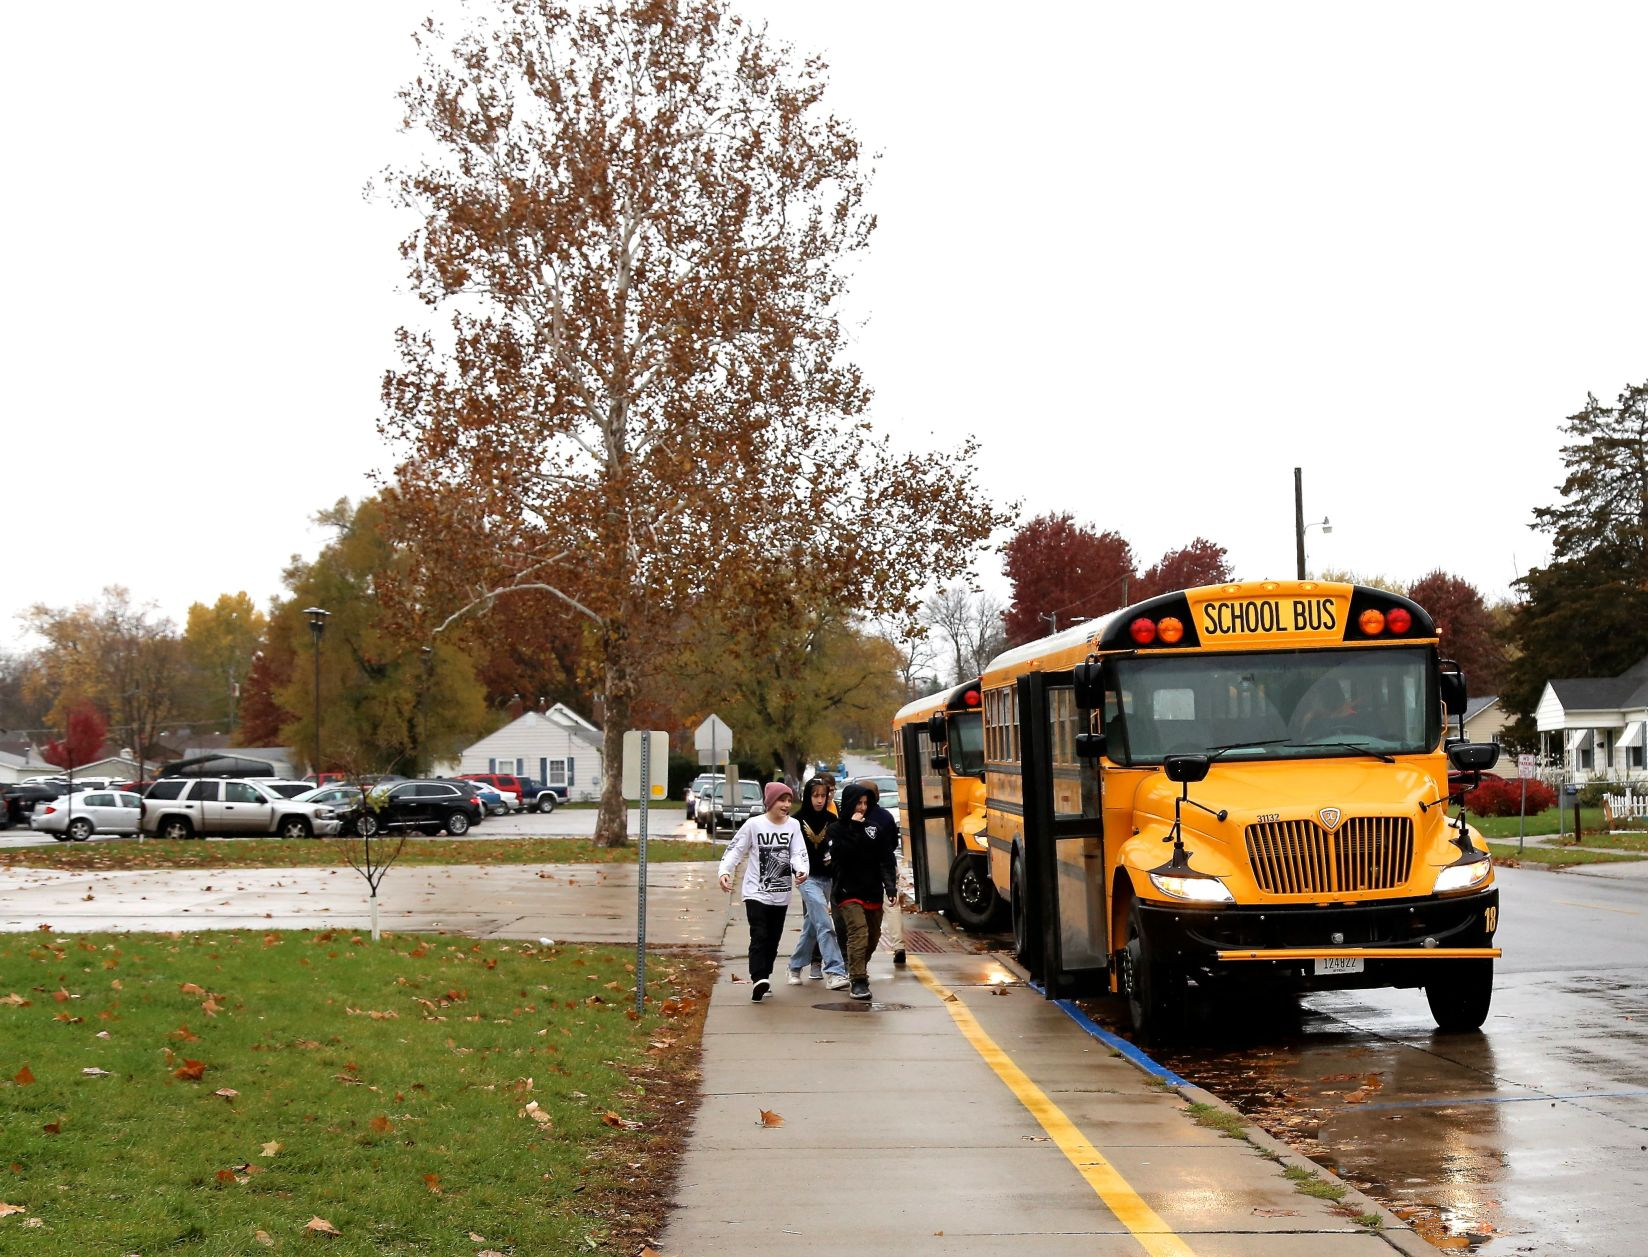 Ottumwa students board buses after school in courier file photo.